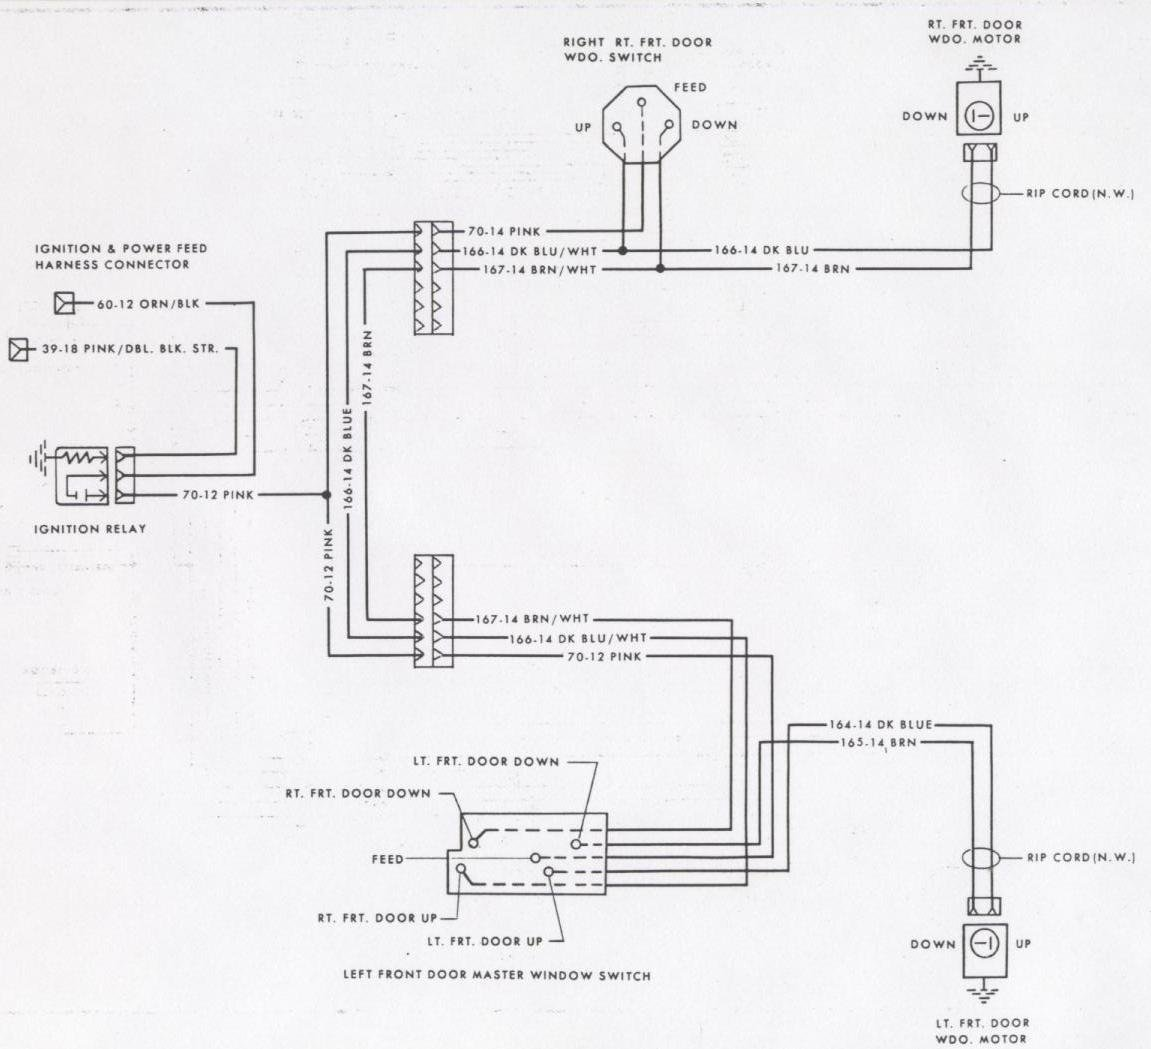 1980 pontiac firebird wiring diagram